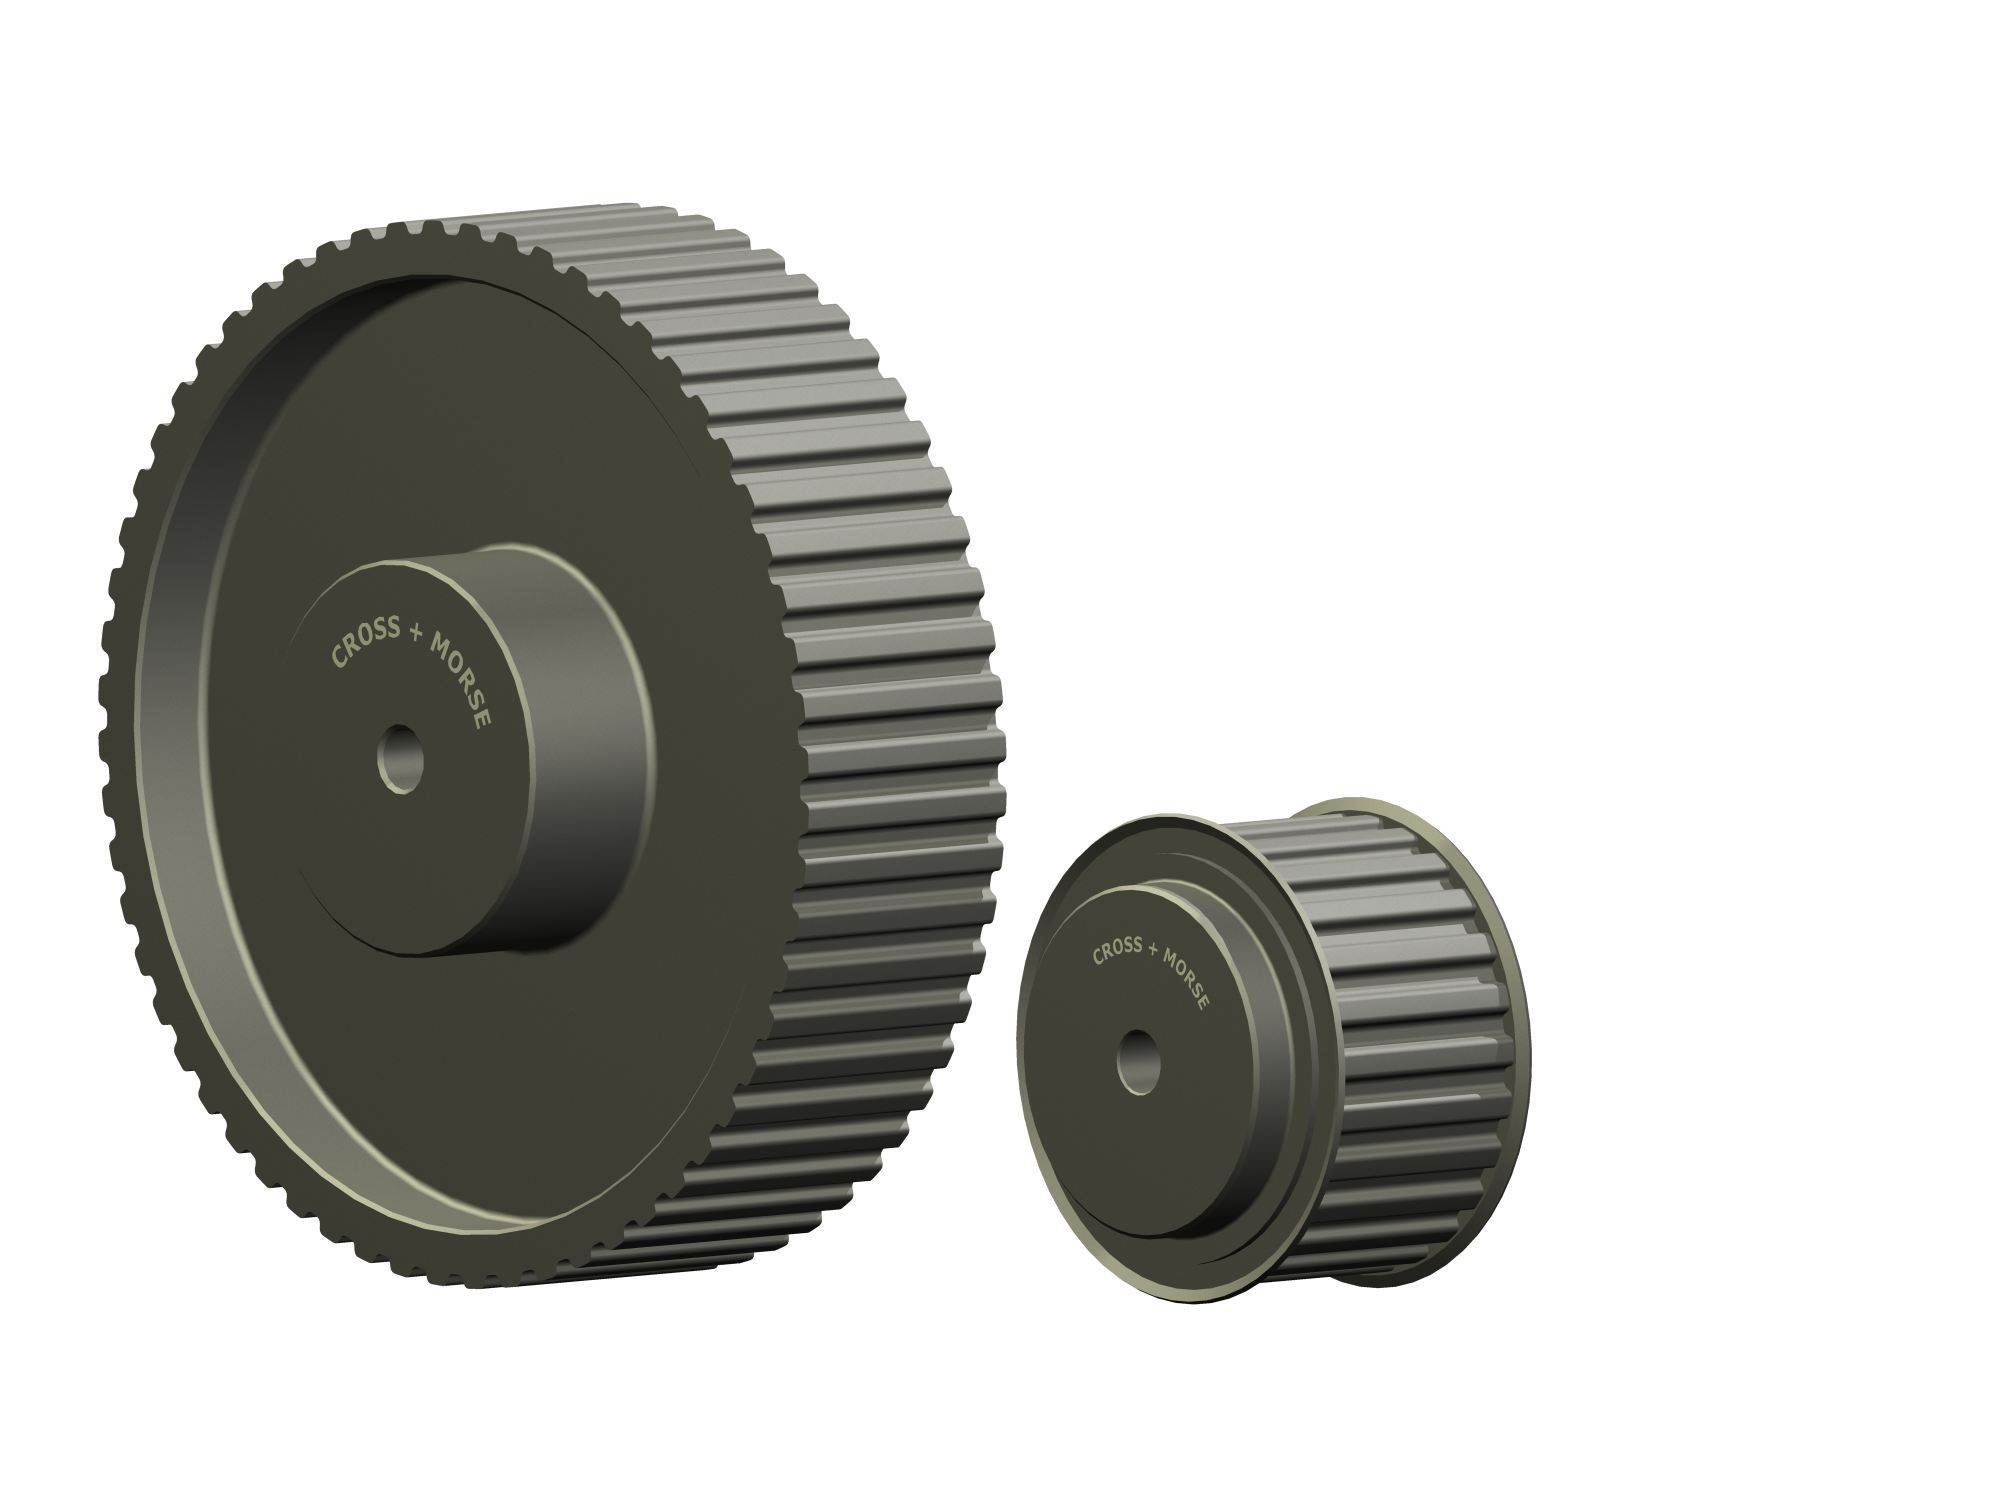 Timing Belt Pulley Manufacturer In Coimbatore : Timing belt pulley manufacturer in maharashtra